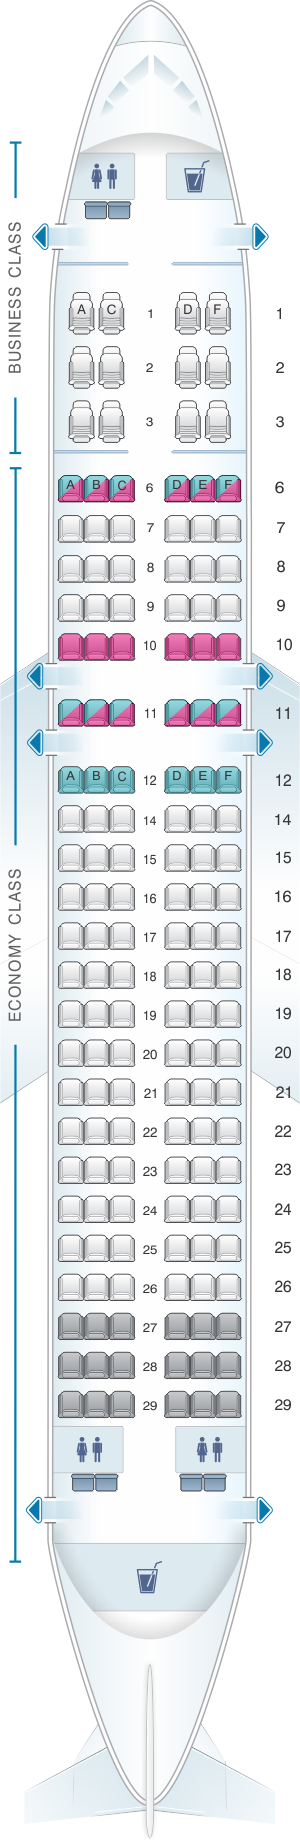 Seat map for SriLankan Airlines Airbus A320 NEO